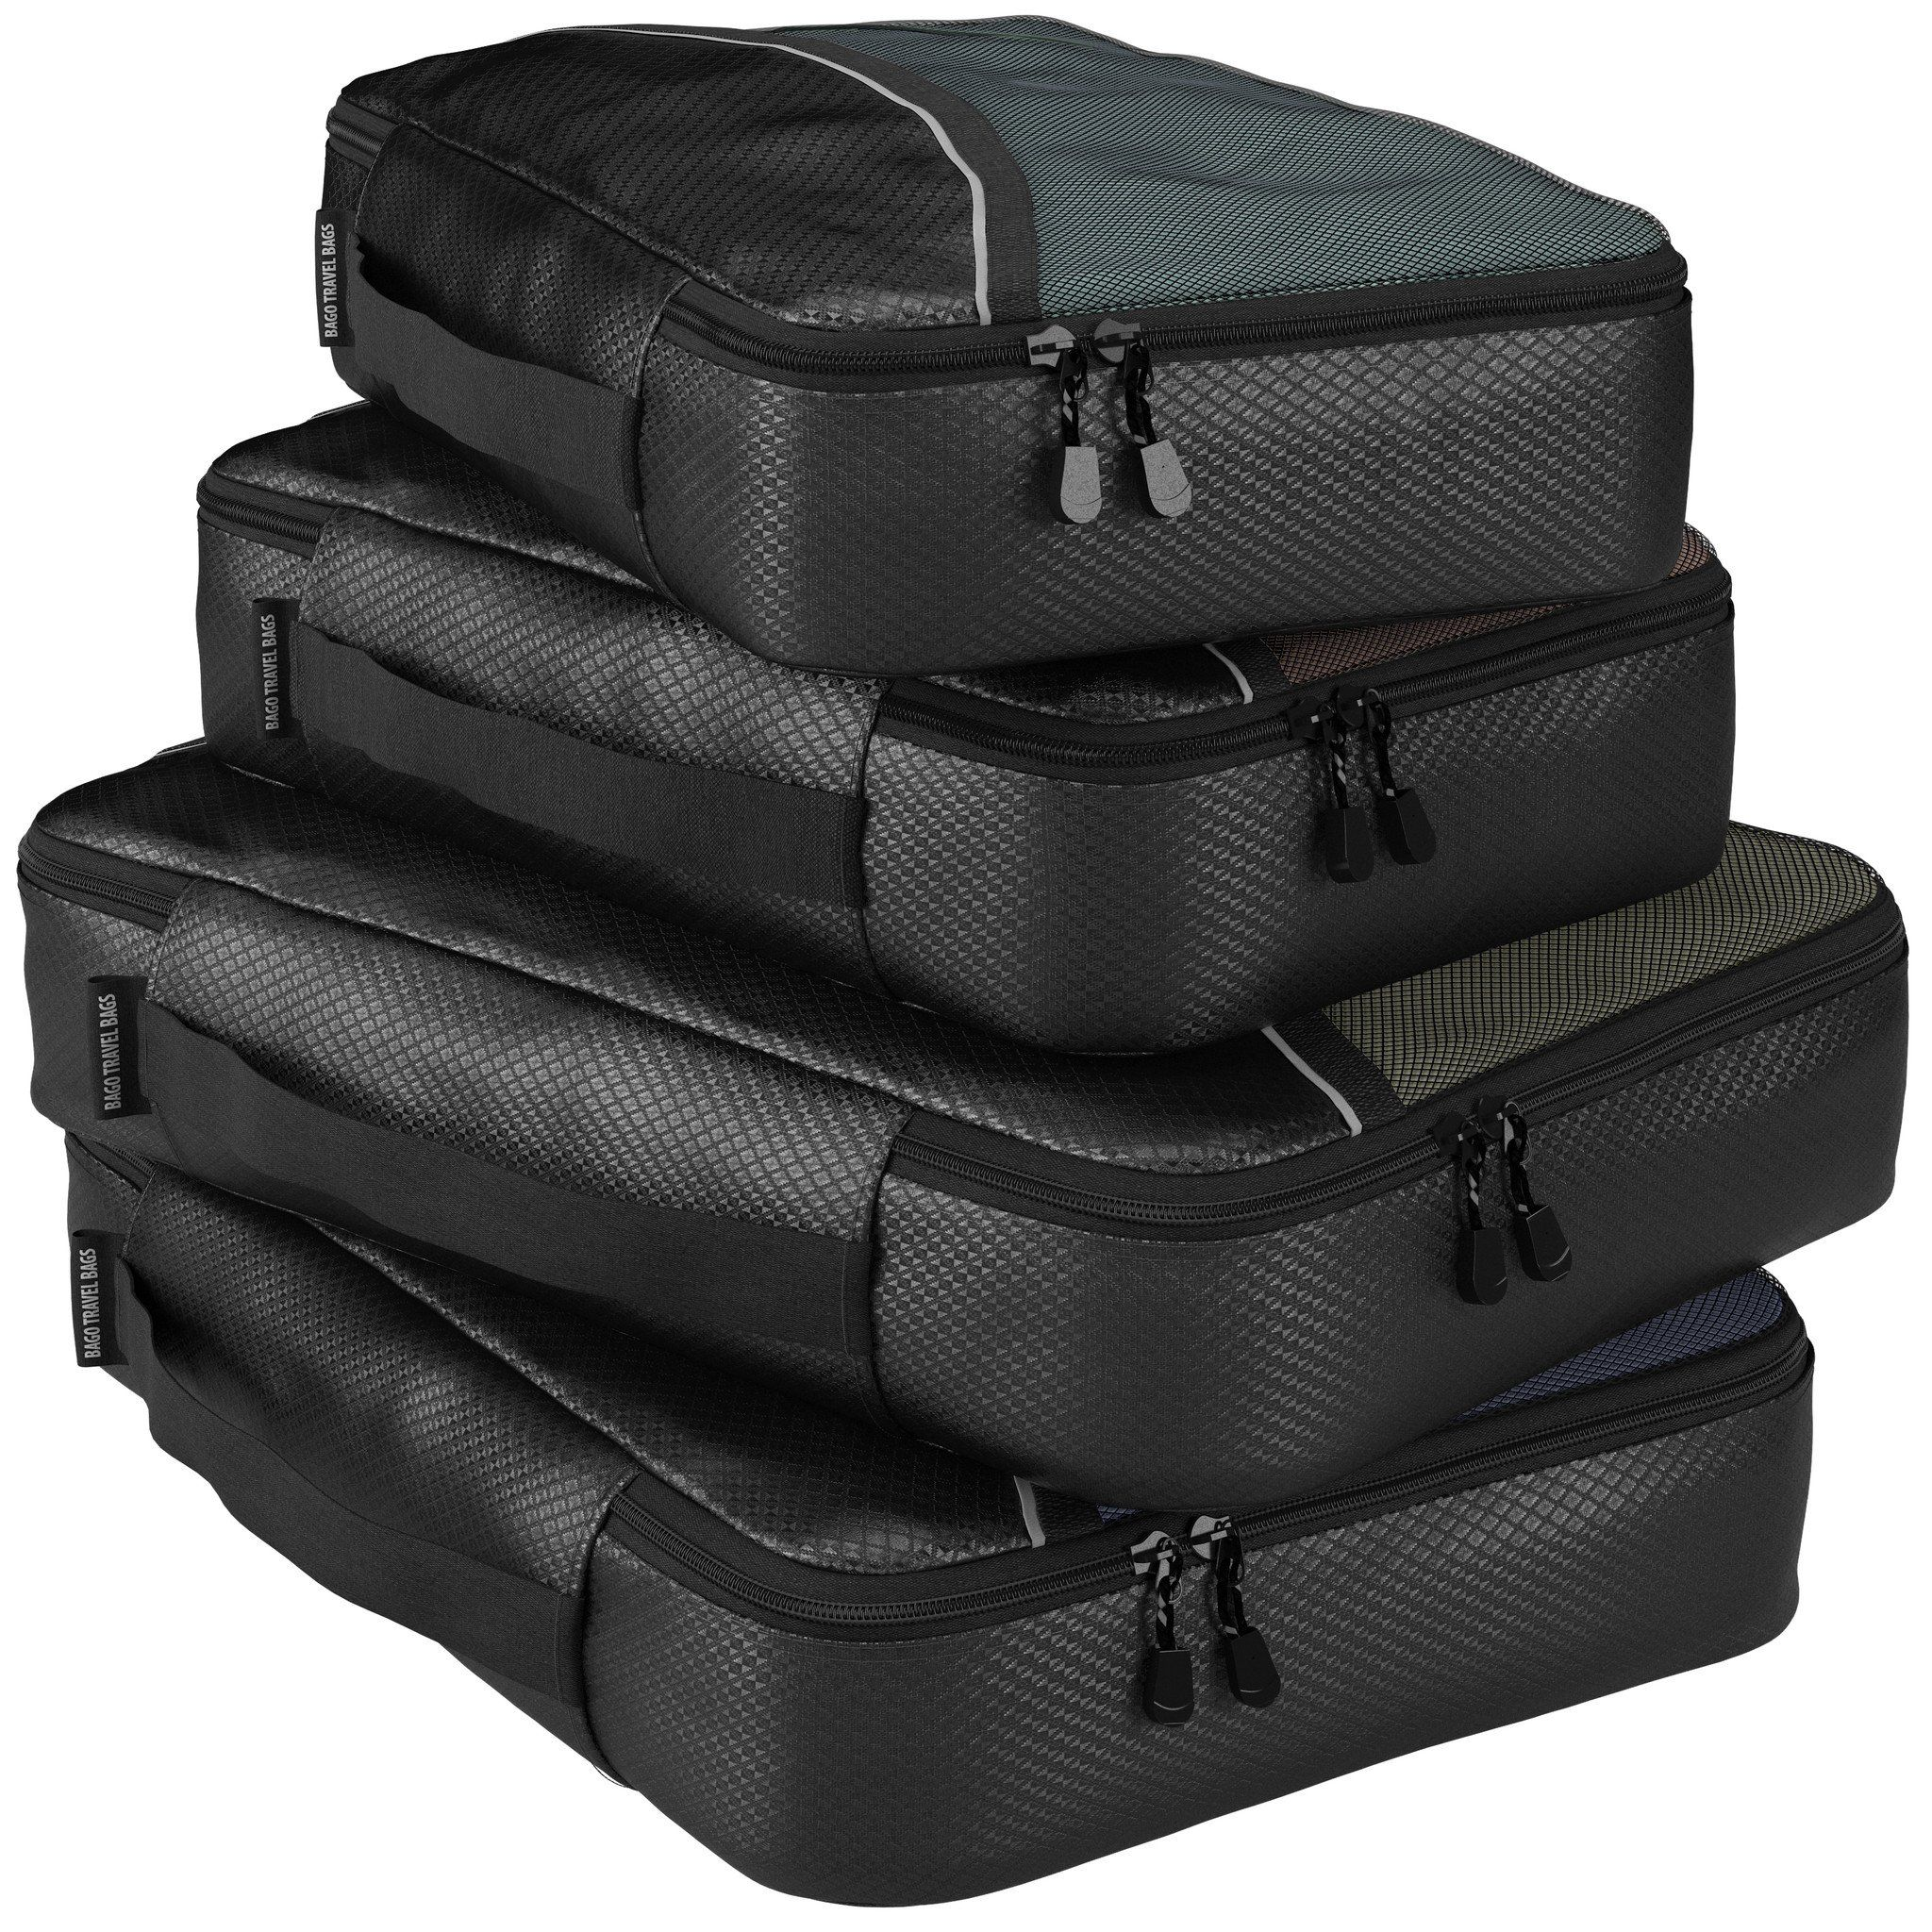 213a9a6664d0 Packing Cubes - Best Organizers for Travel luggage, bags, carry on ...